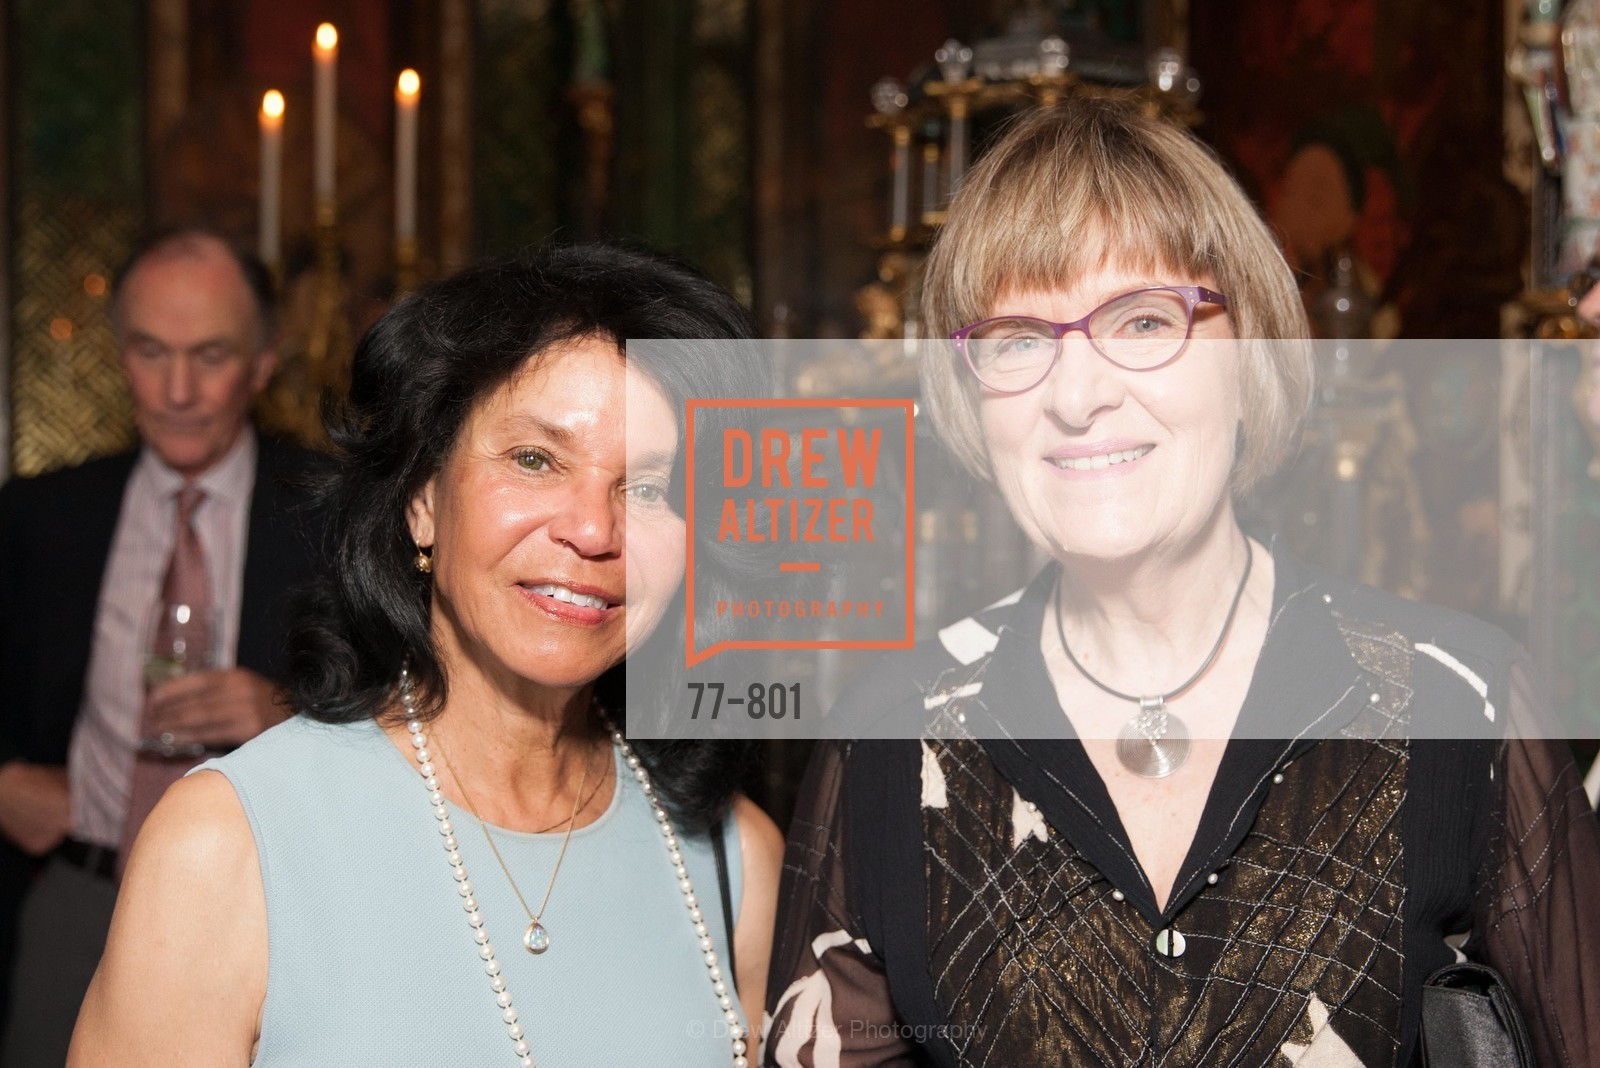 Janice Bell Kaye, GETTY Hosts Leakey Foundation Dinner, US, April 23rd, 2015,Drew Altizer, Drew Altizer Photography, full-service agency, private events, San Francisco photographer, photographer california